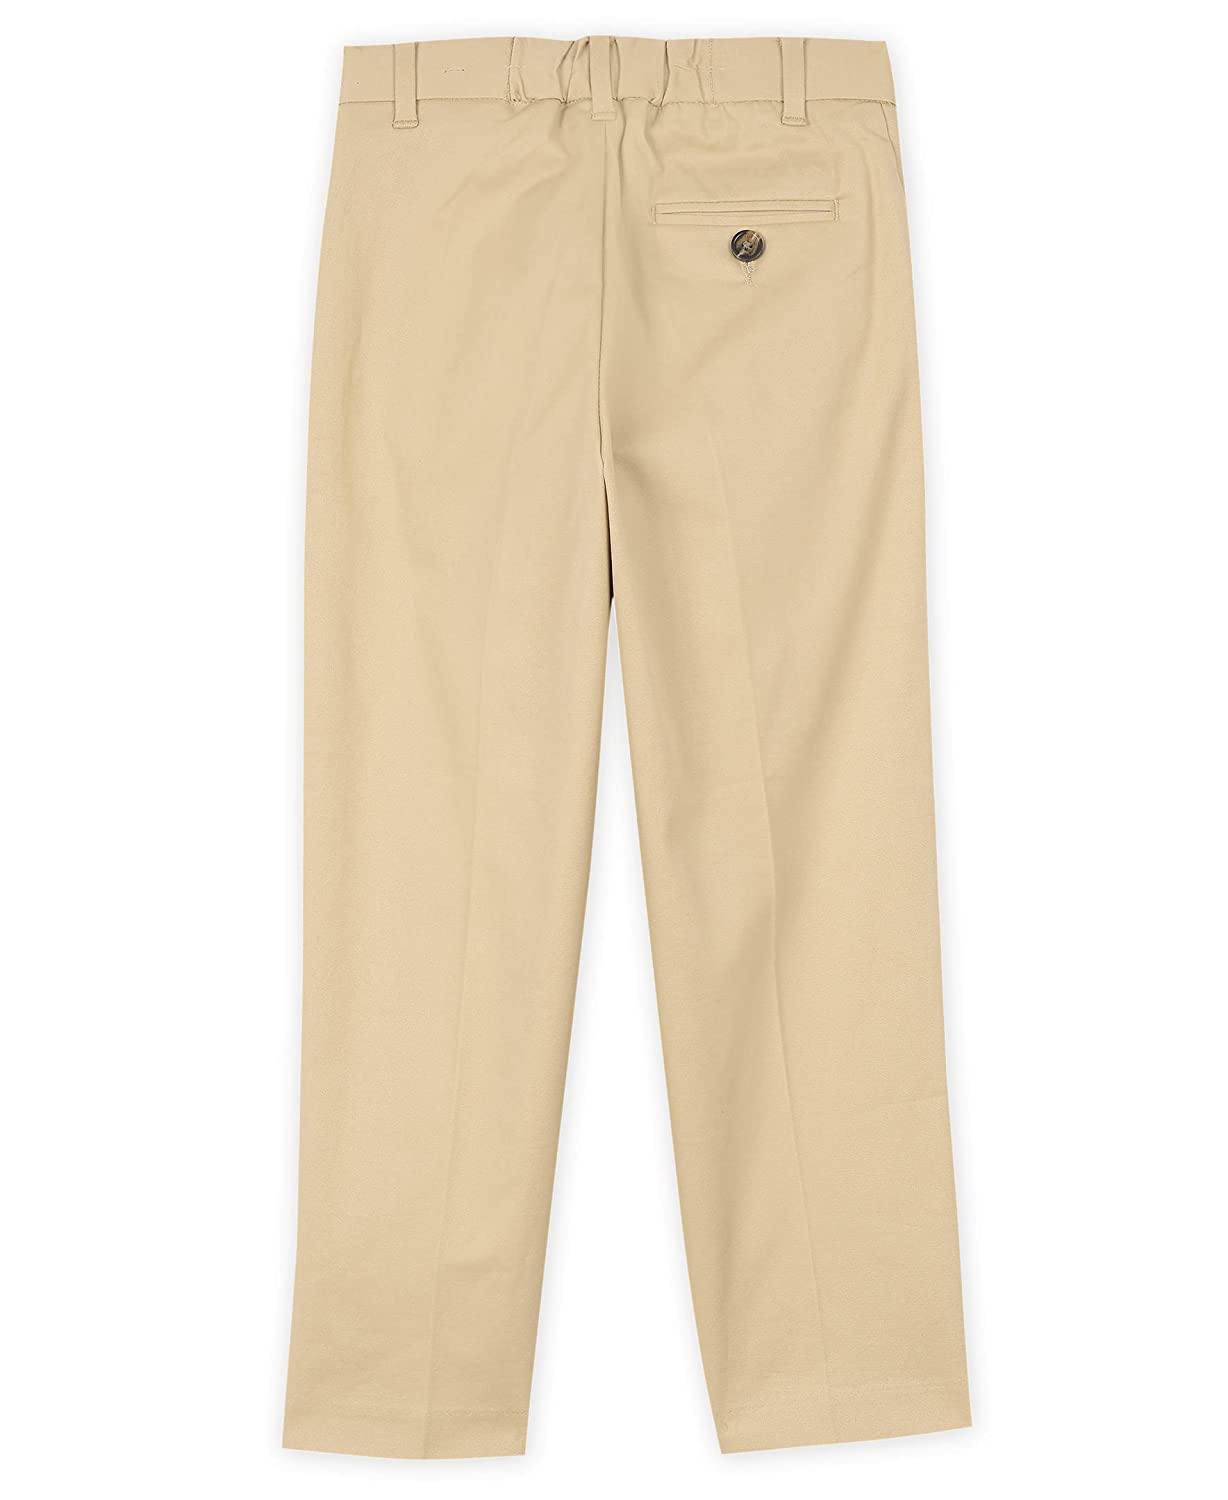 Tommy Hilfiger Boys Flat Front Twill Dress Pant